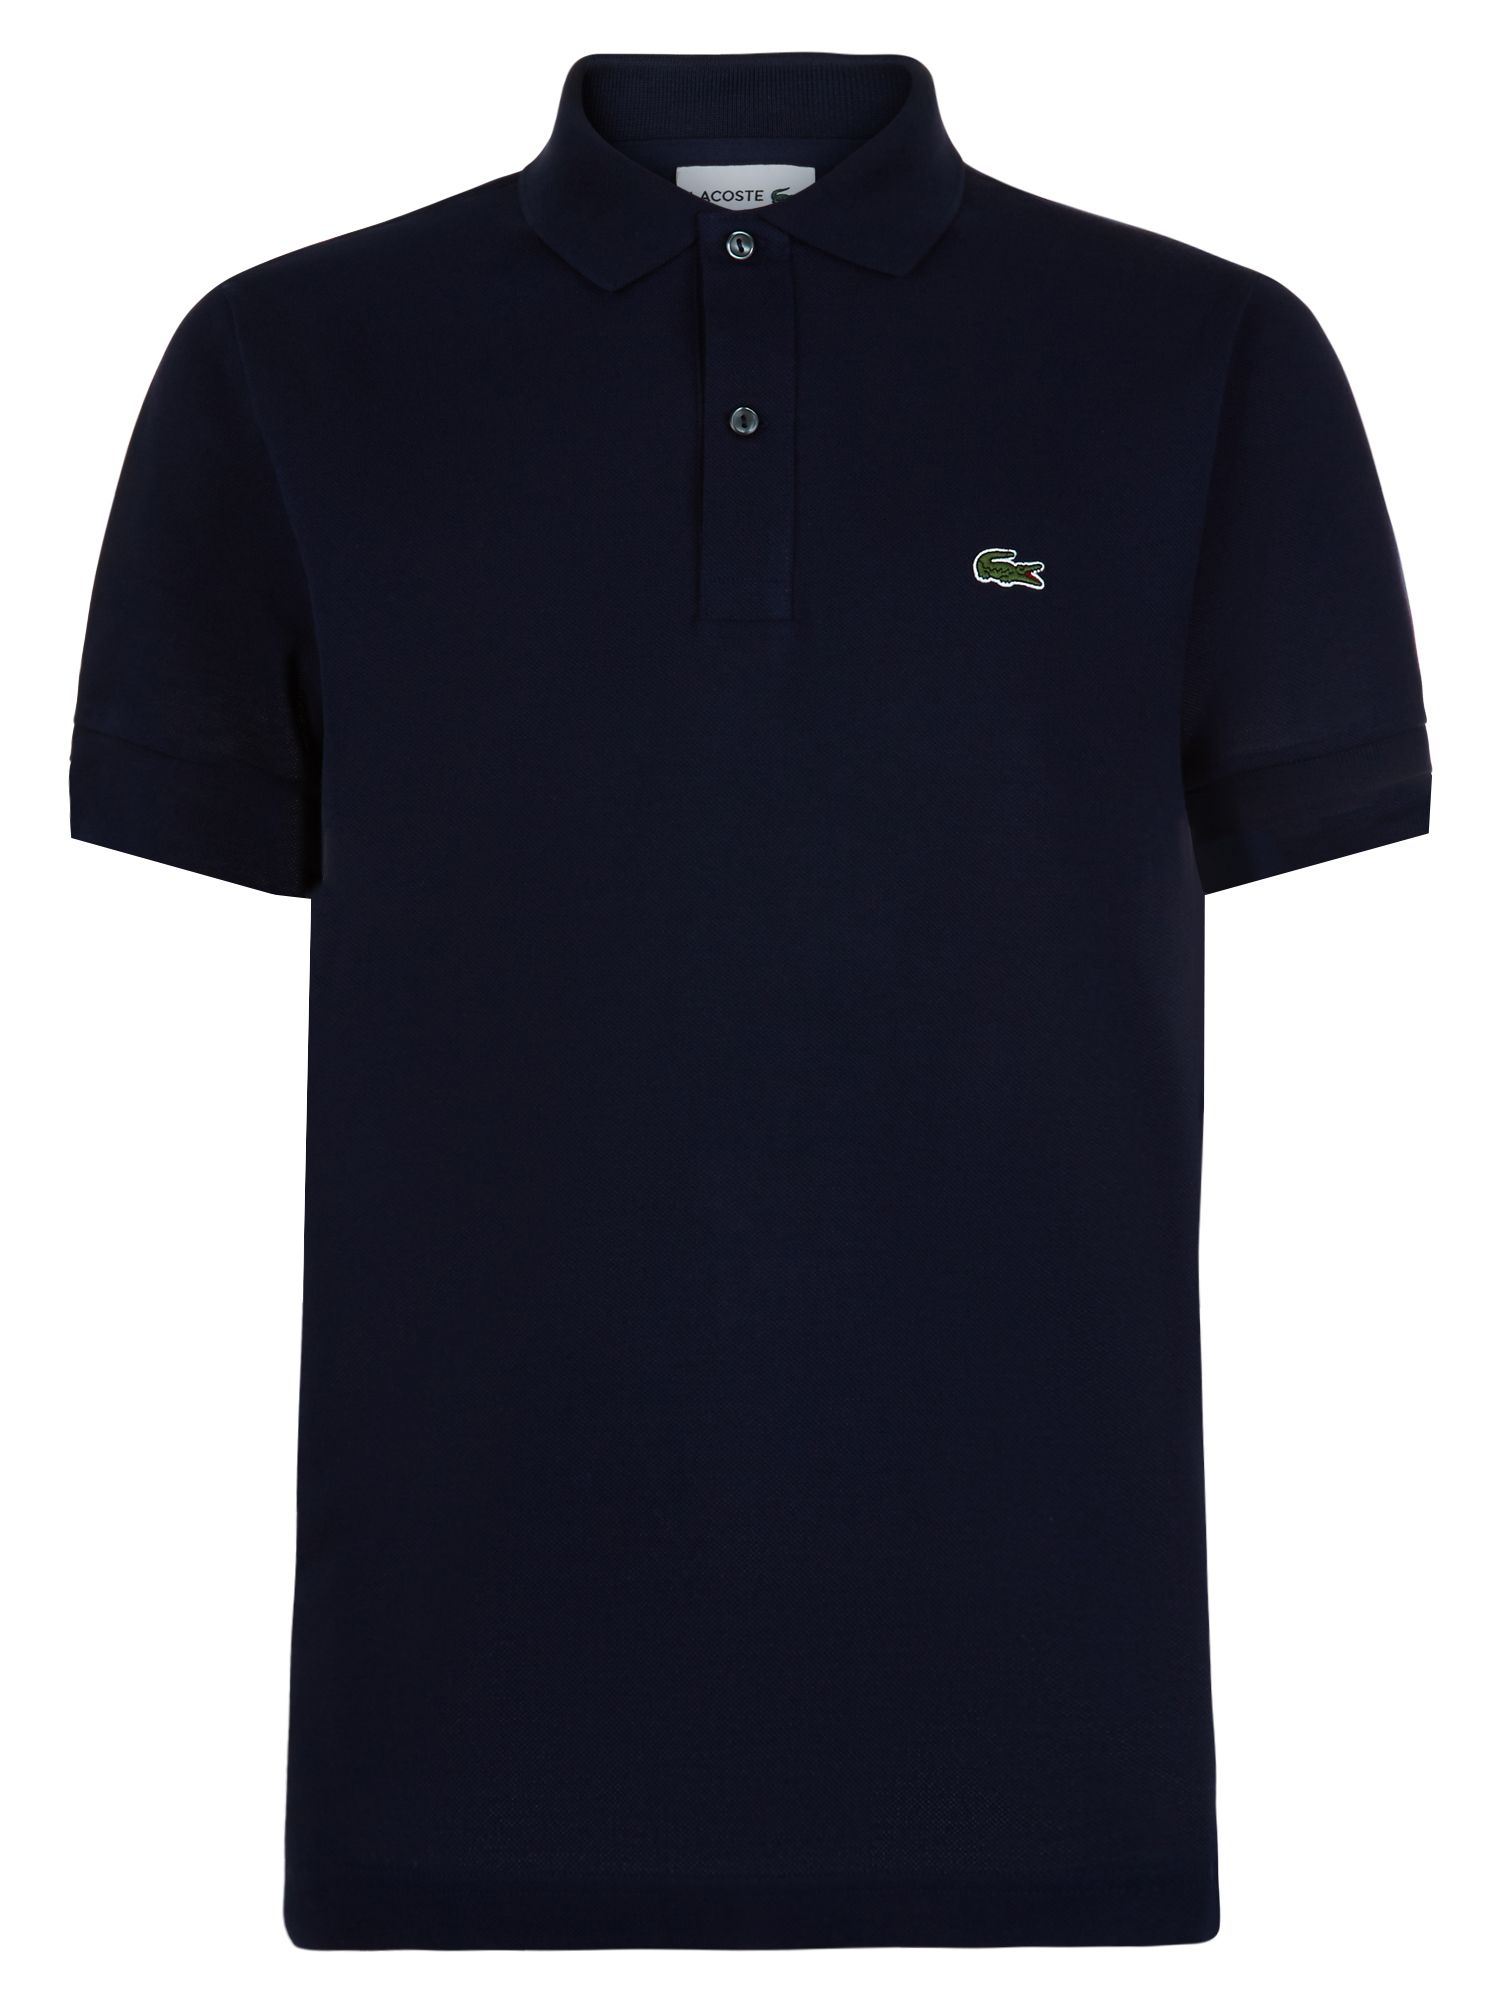 Men's Lacoste Slim Fit Polo in Pique, Midnight Blue